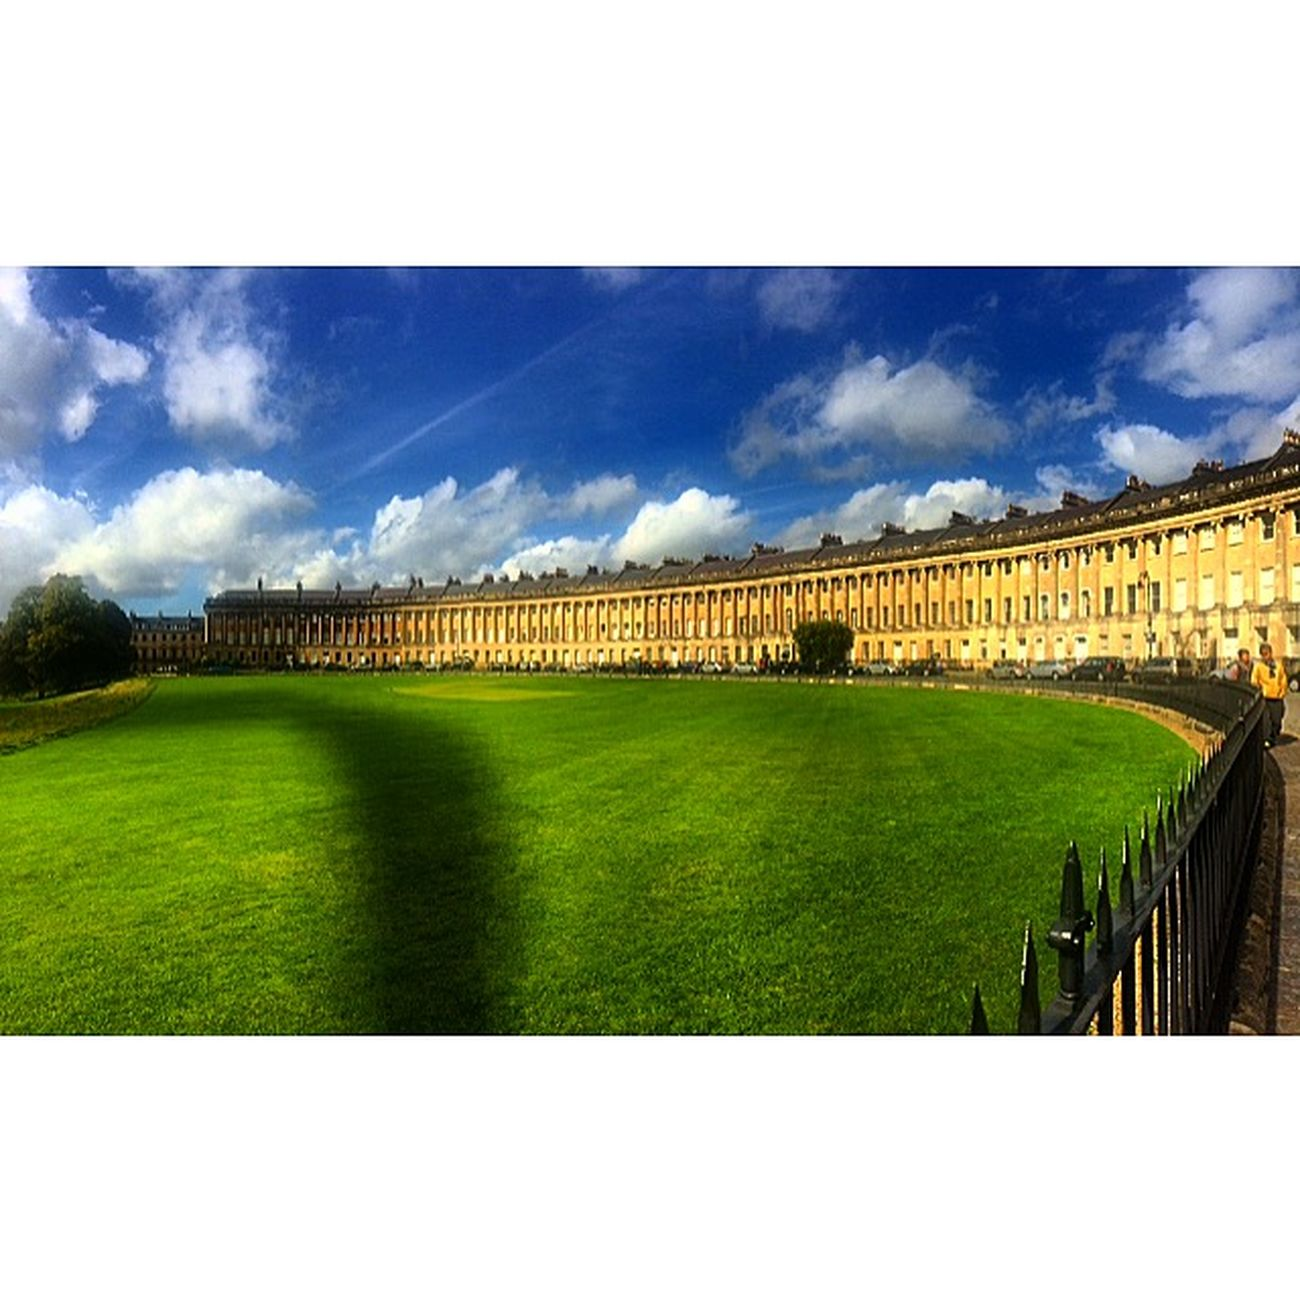 Bath Spa Travel Travel Photography At U.K. Architecture Impressive Great View Romantic Jane Austen